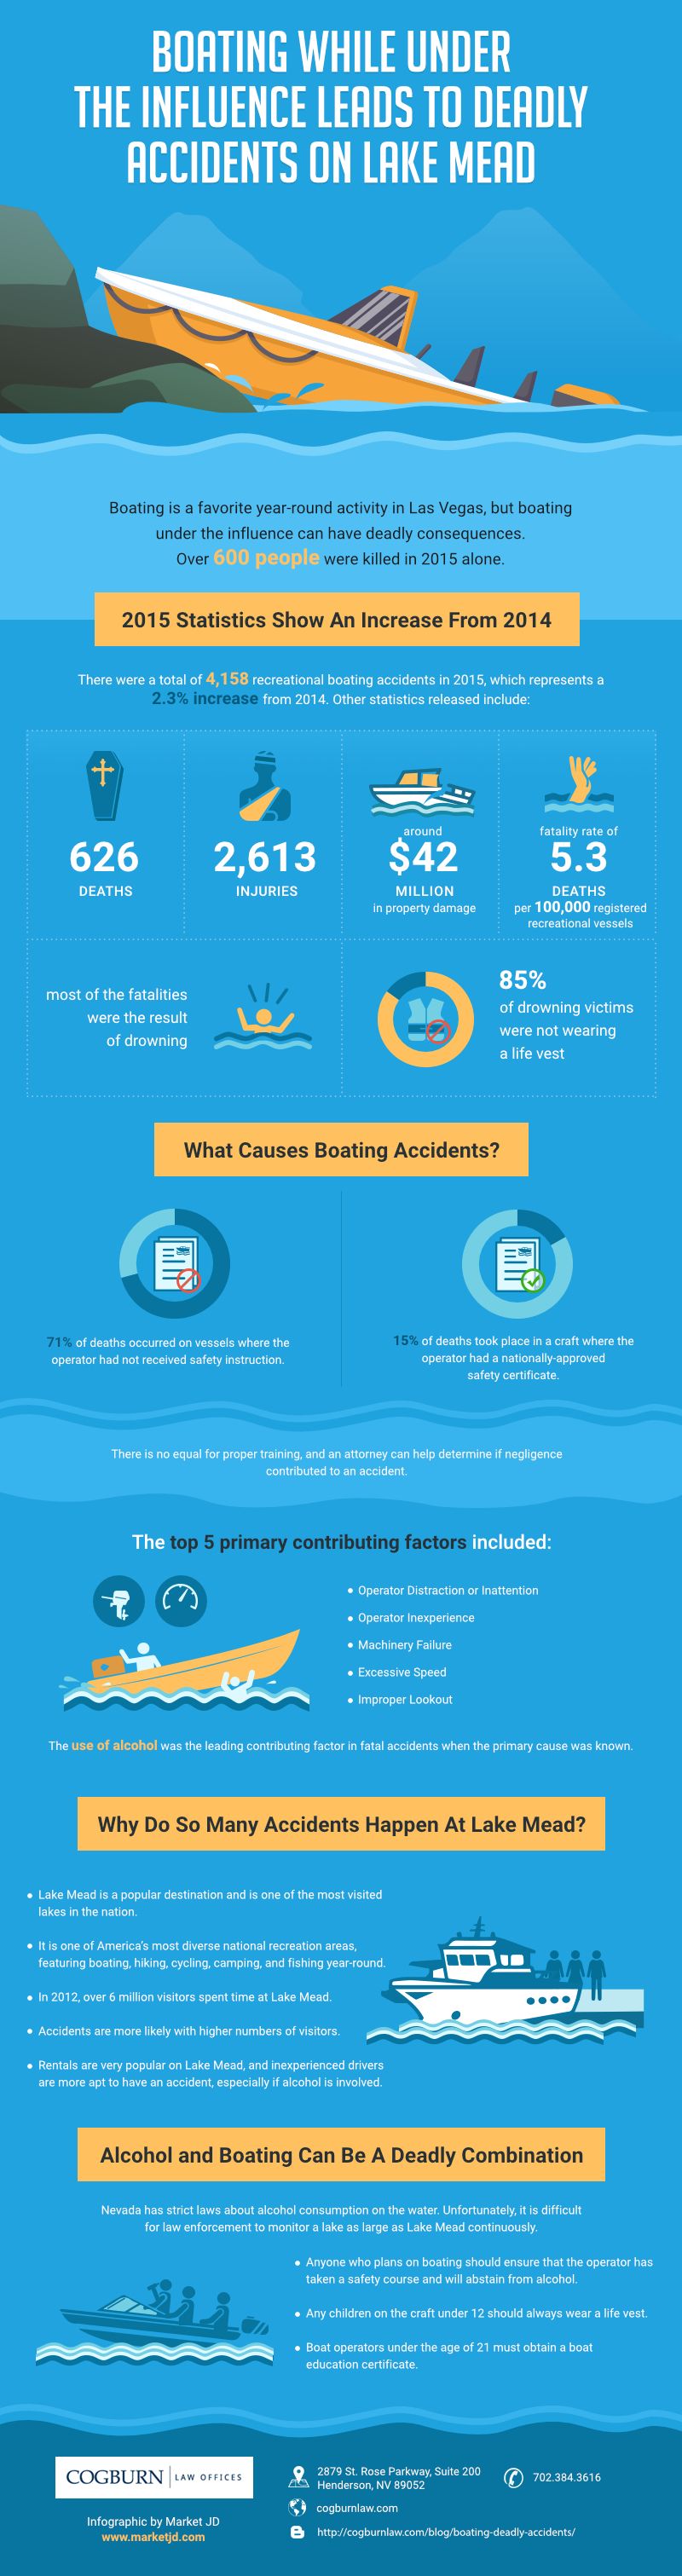 infographic_Boating Under the Influence on Lake Mead